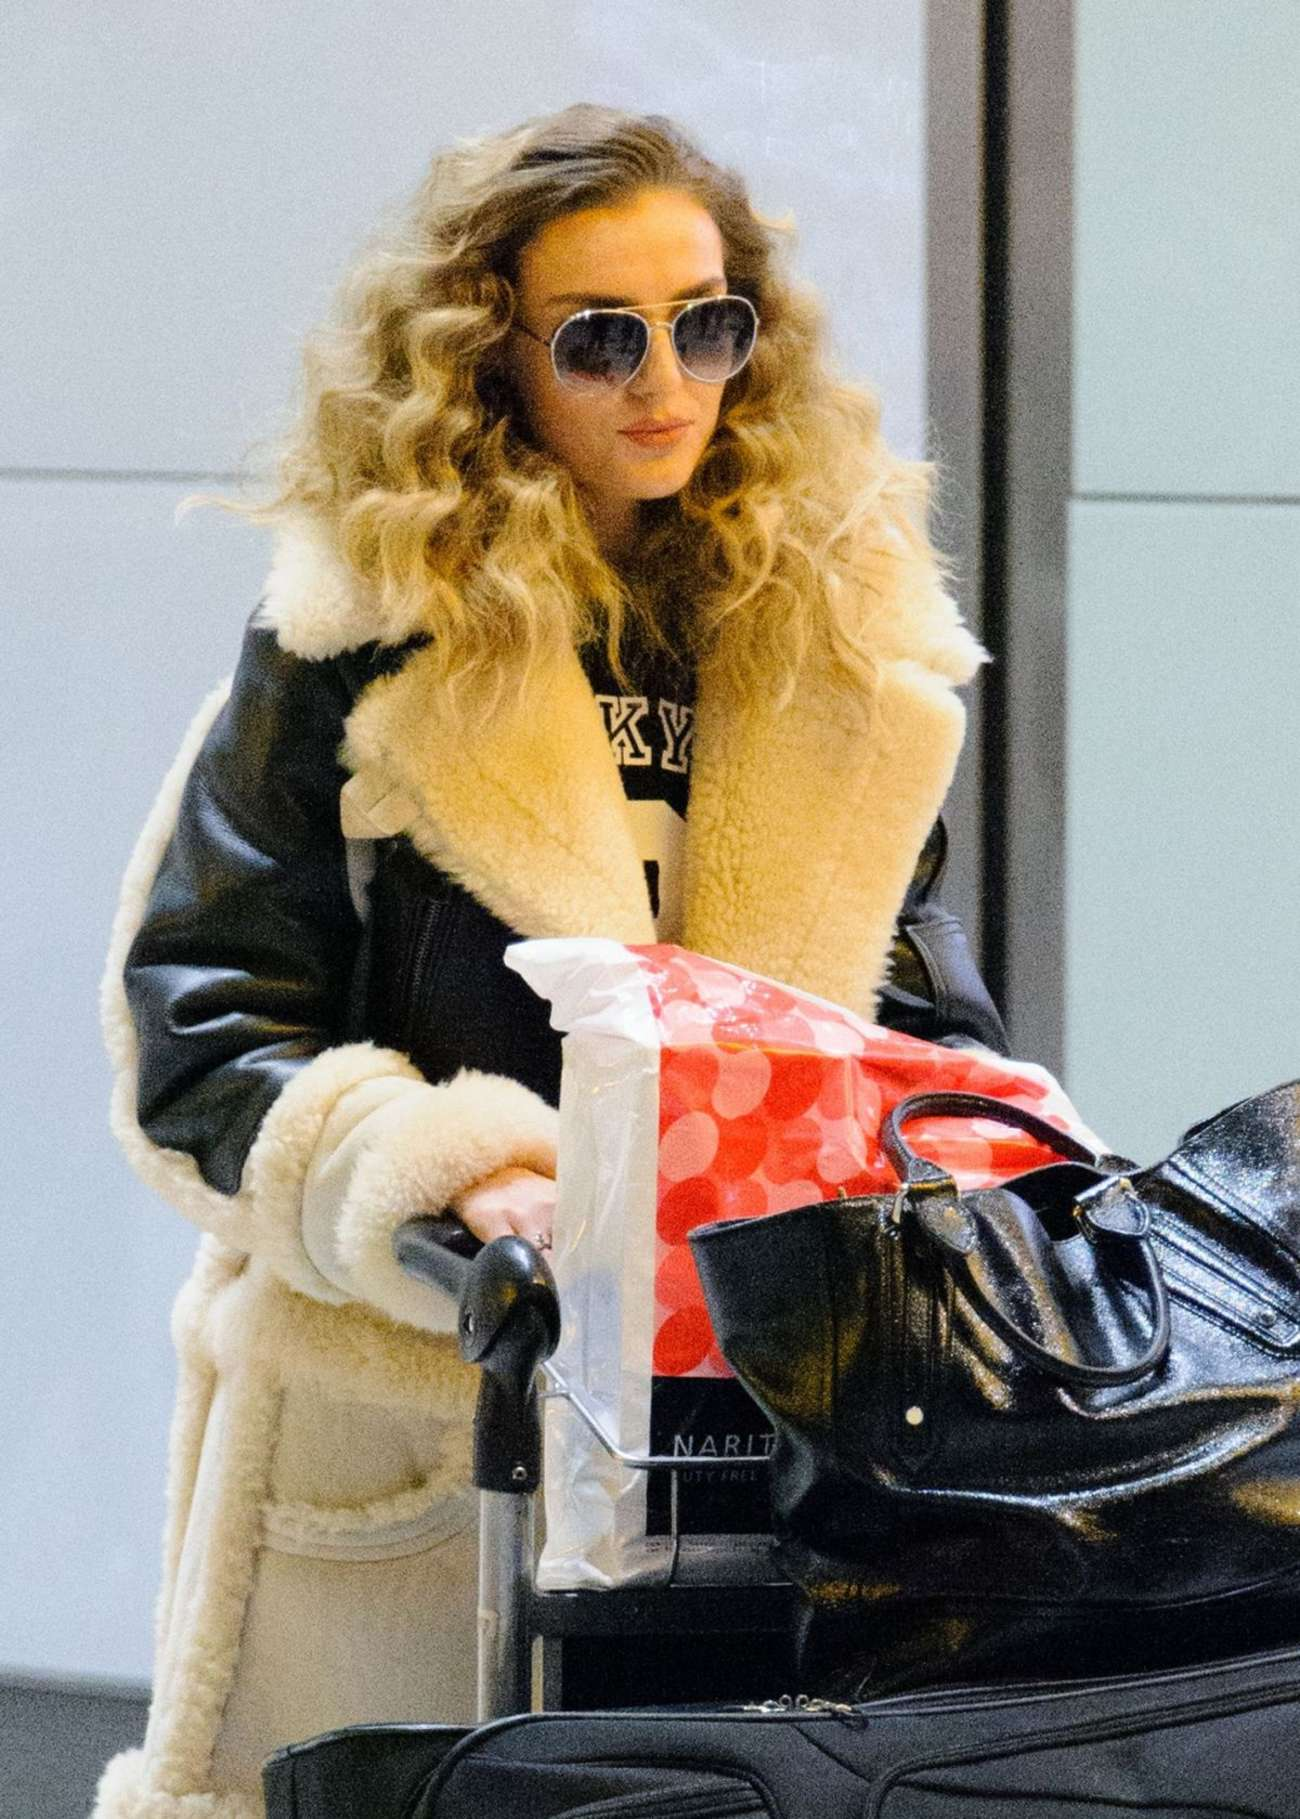 Perrie Edwards at Heathrow Airport in London